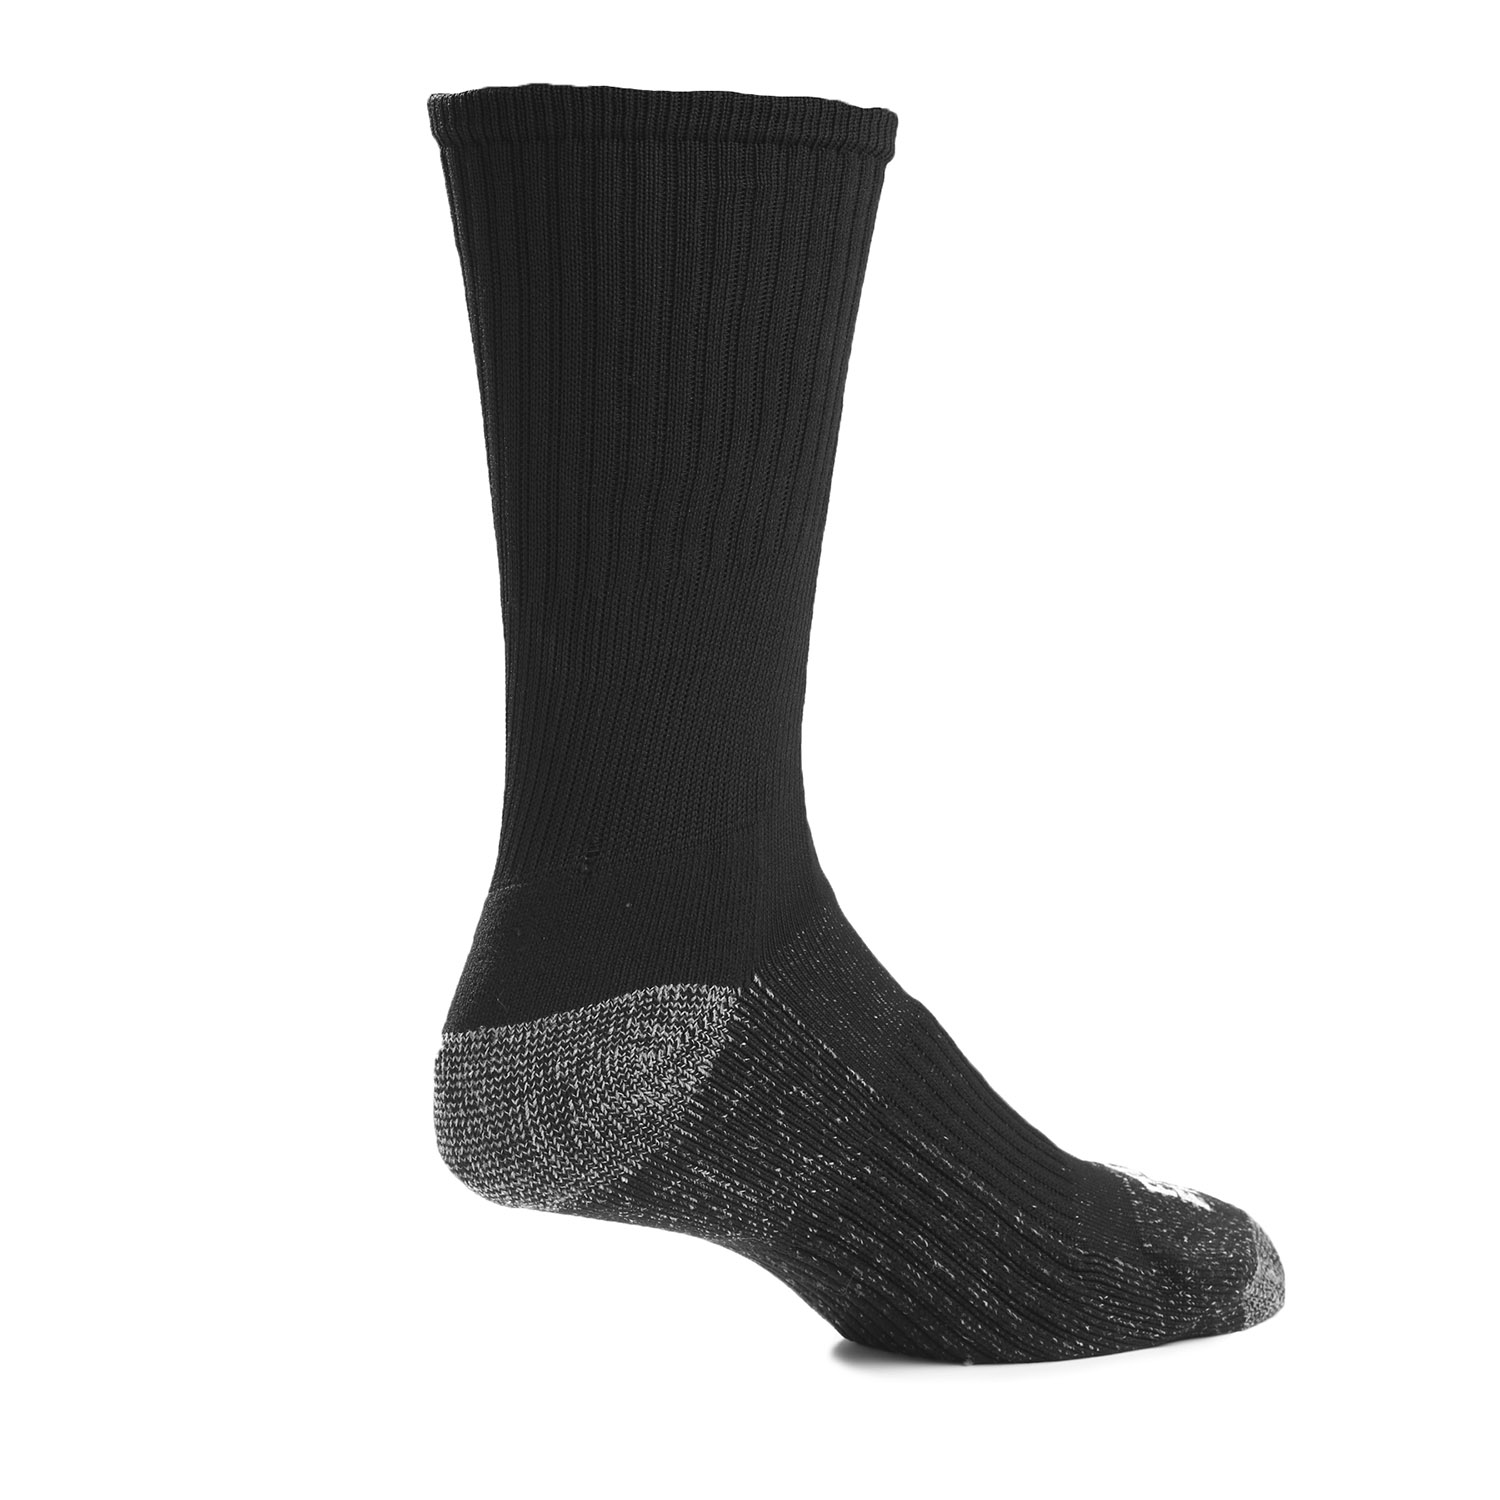 Pro Feet Performance Silver Tech Crew Socks